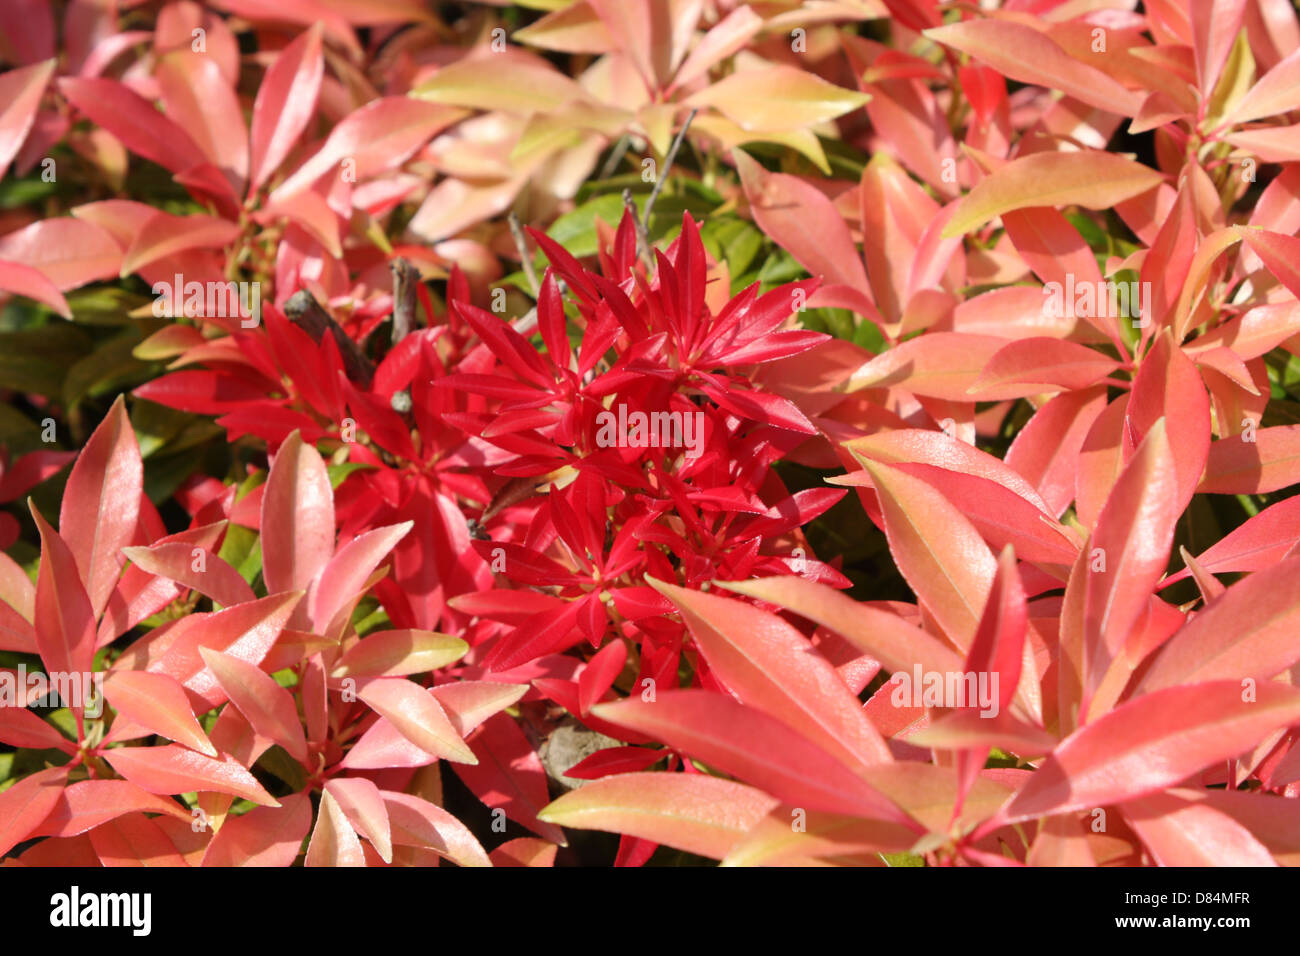 Flame Flower Stock Photos Flame Flower Stock Images Page 3 Alamy